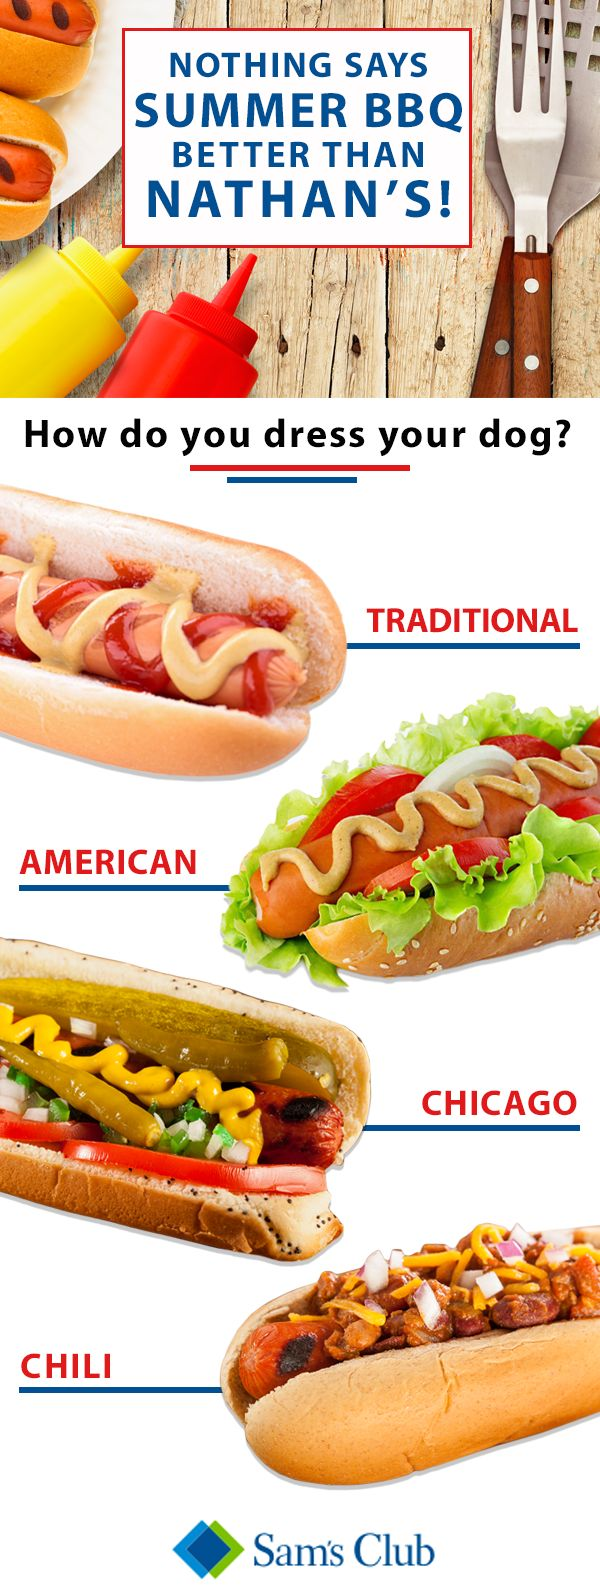 How you dress your dog says a lot about you, and this holiday is the best time to express yourself. Make a lasting impression by bringing Nathan's to the BBQ this year and show everyone how it' s done. Make sure you swing by Sam's Club for not only the best hot dogs in the game, but for everything else you'll need to have the best holiday ever.